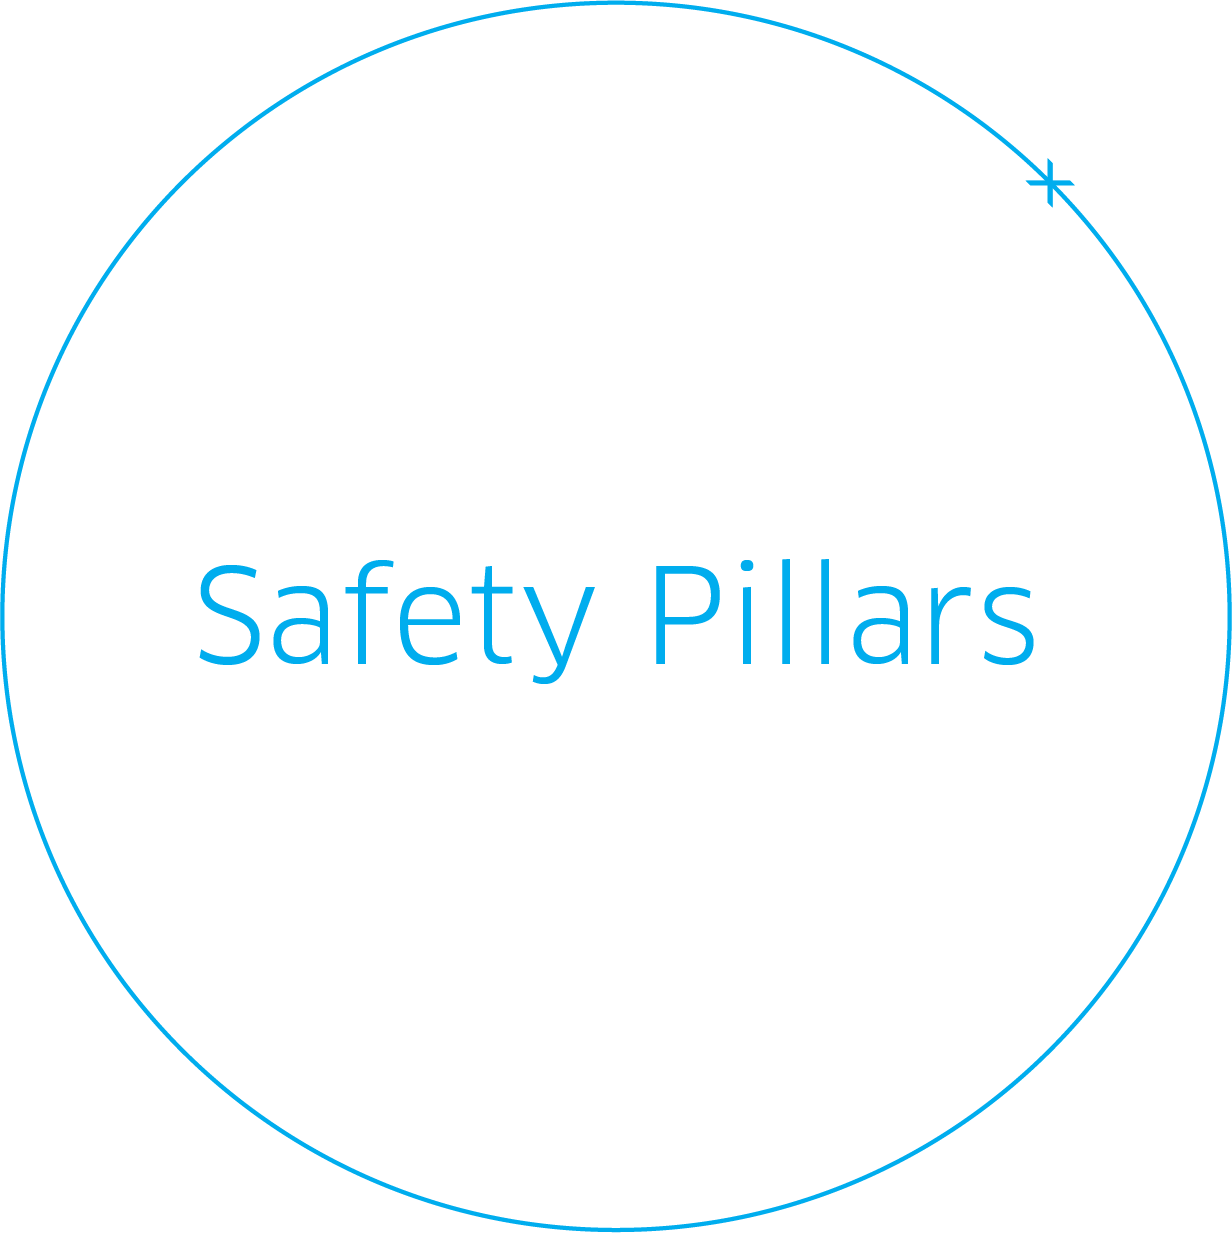 Safety Pillars